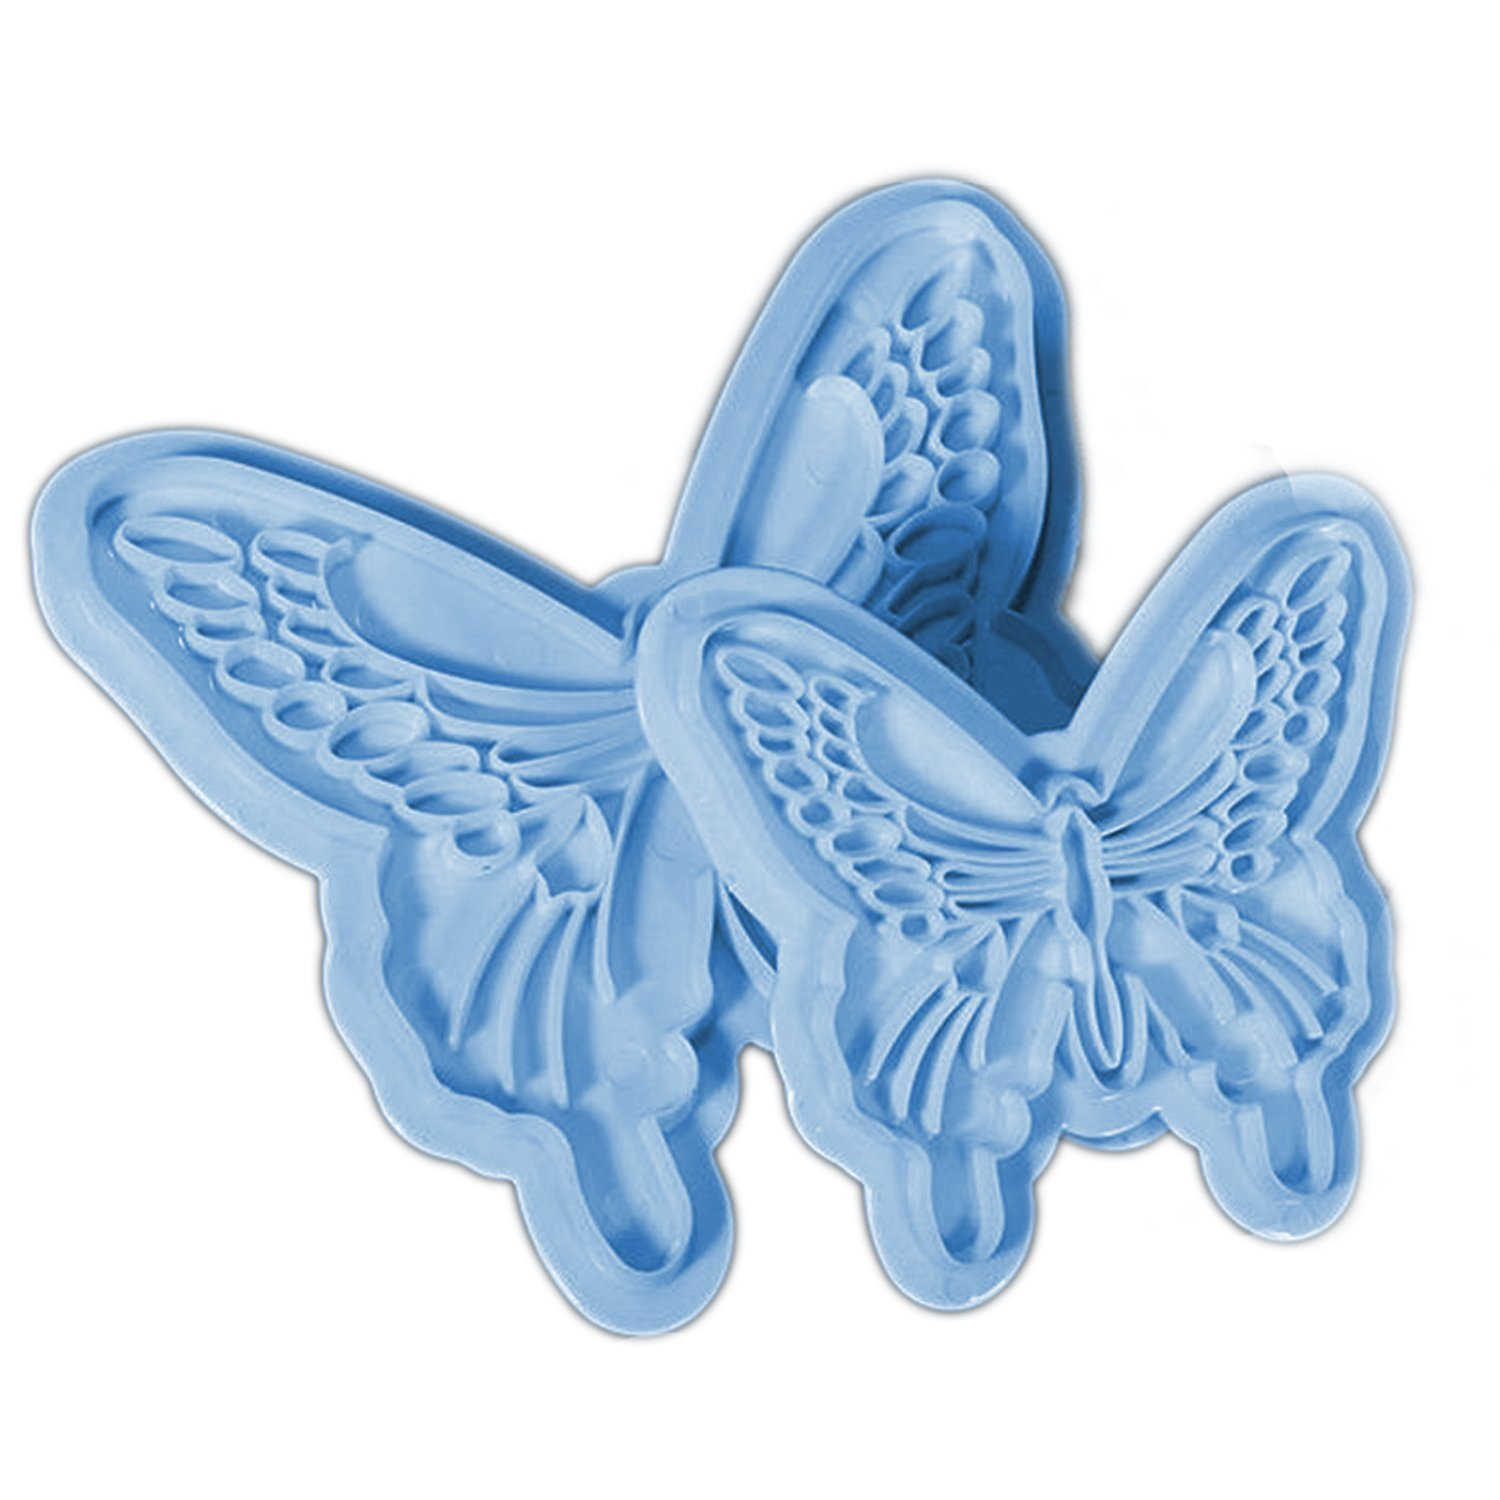 2 PCS Butterfly Shape Sugar Jelly Baking Candy Fondant Craft Mold DIY Cake Decorating Mould Gosear